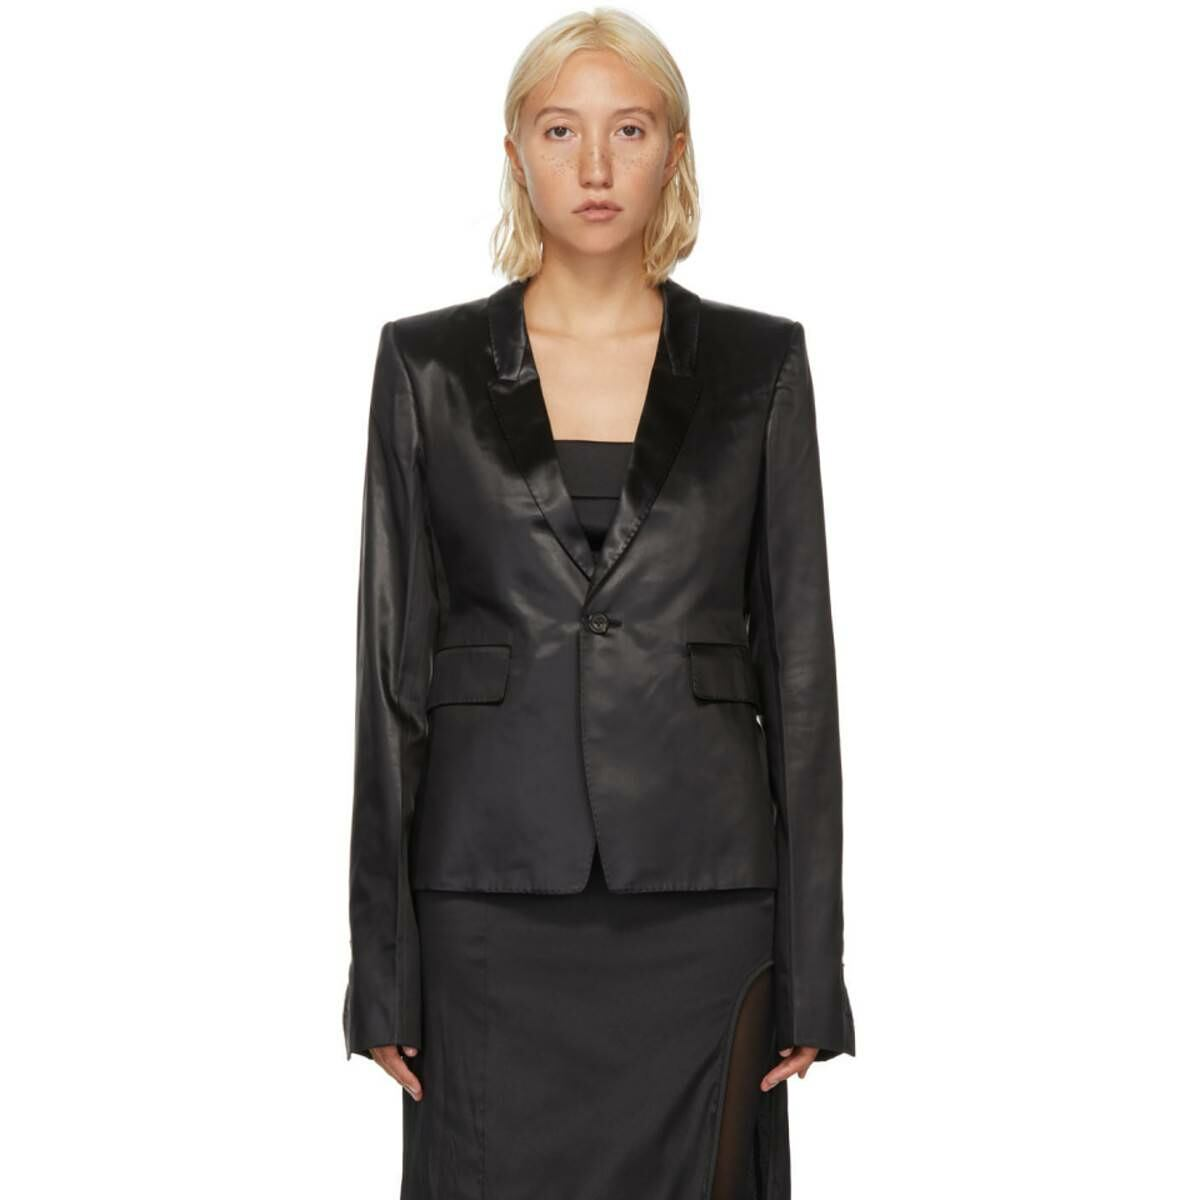 Rick Owens Black Satin Soft Blazer Ssense USA WOMEN Women FASHION Womens BLAZER